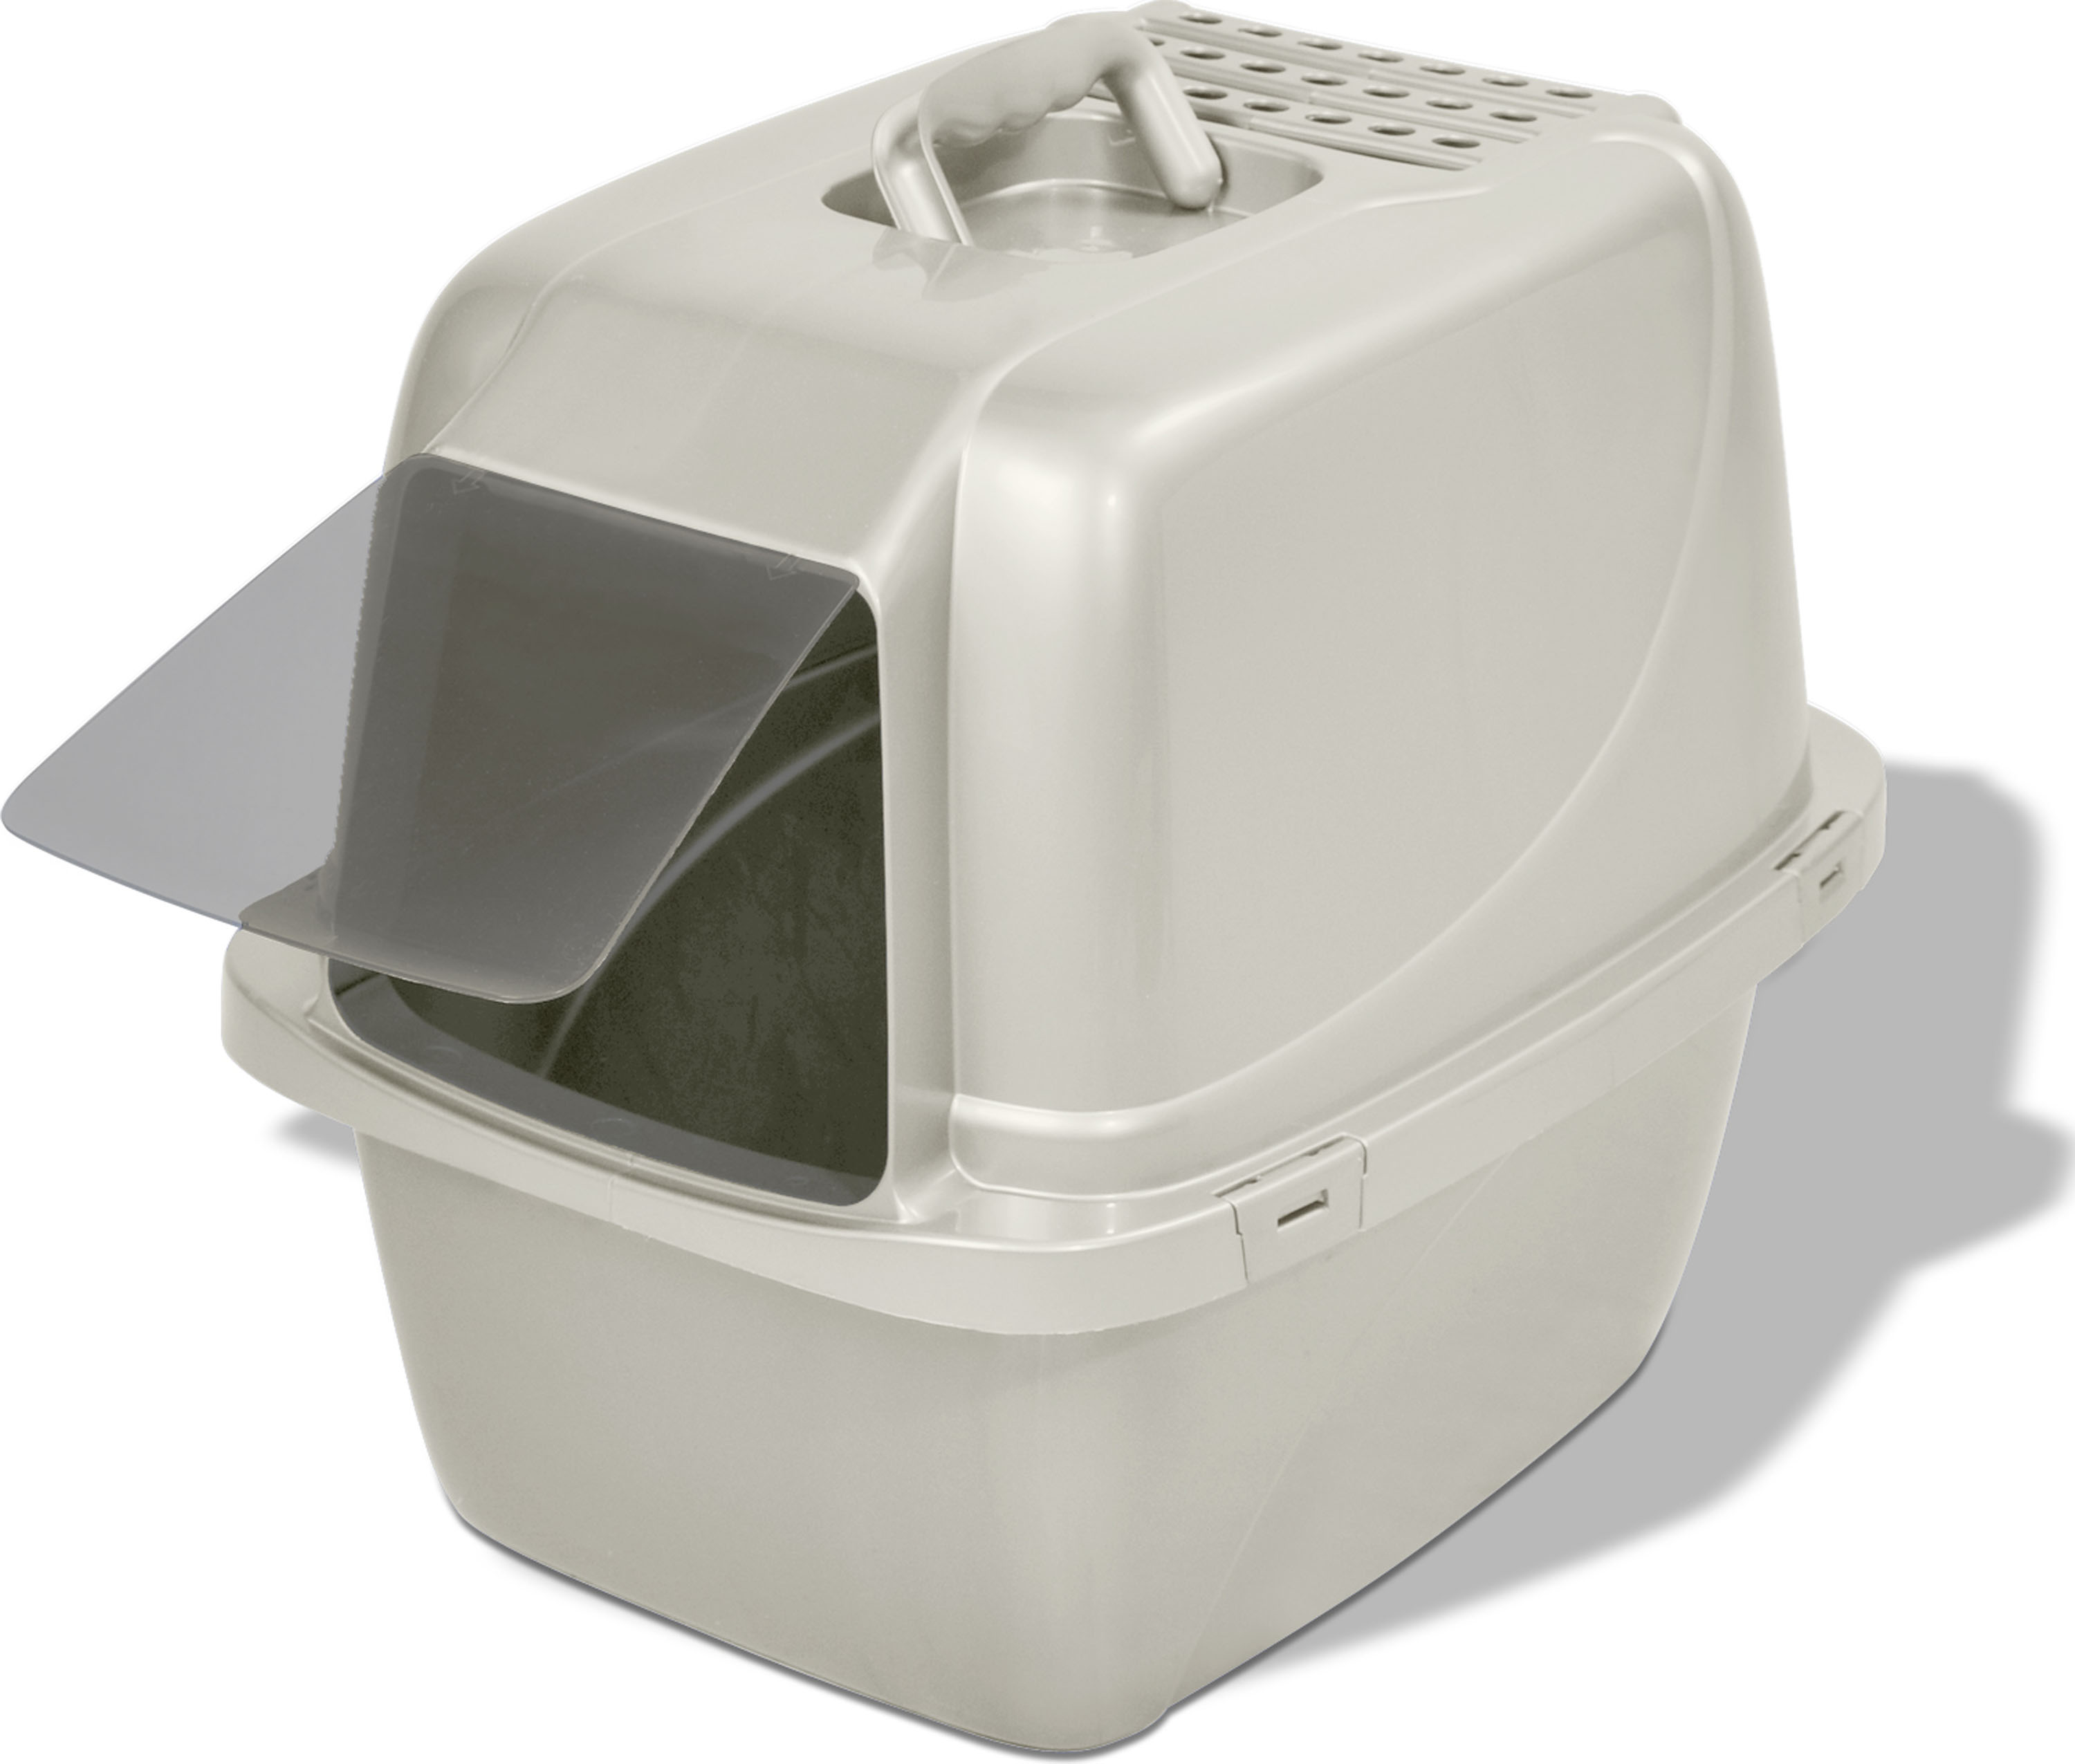 Van Ness Enclosed Cat Litter Box, Large